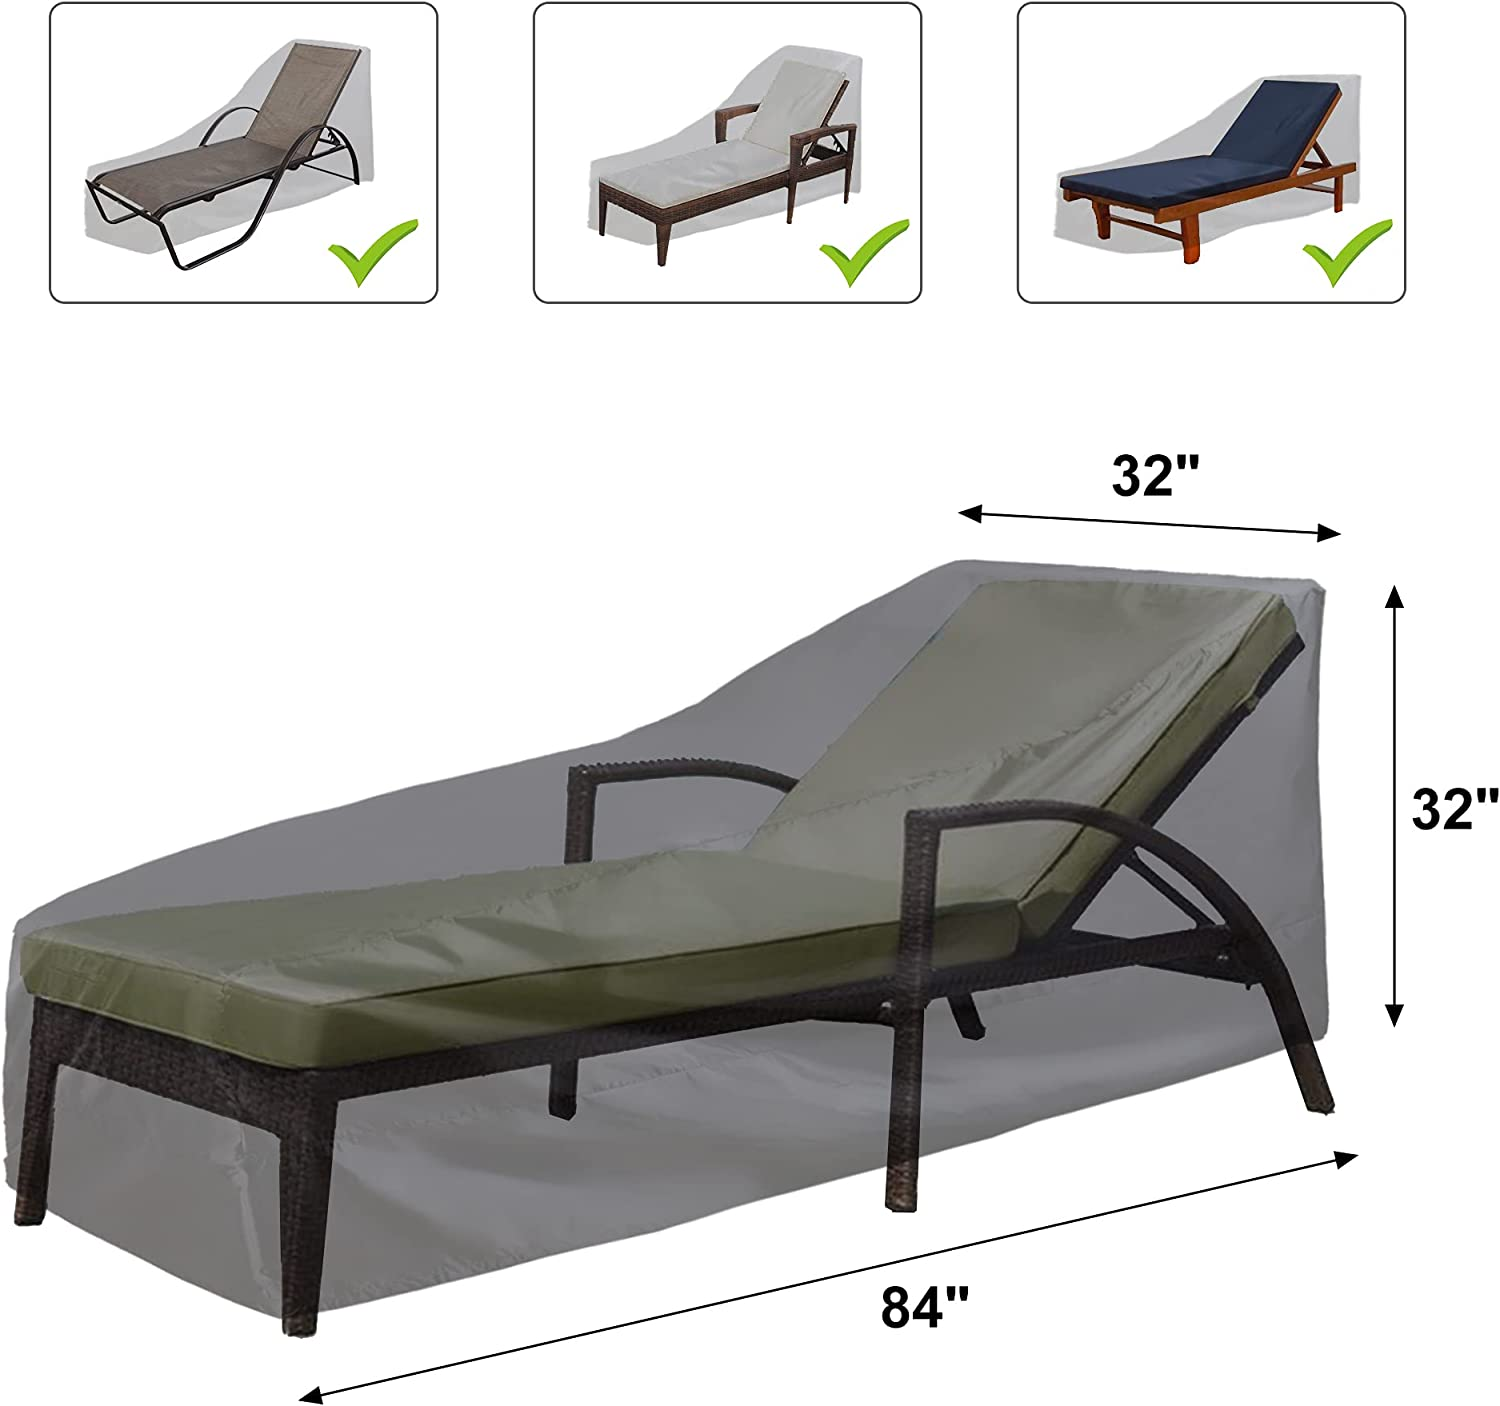 Chaise Lounge Cover, ALSTER Patio Furniture Covers Waterproof(84